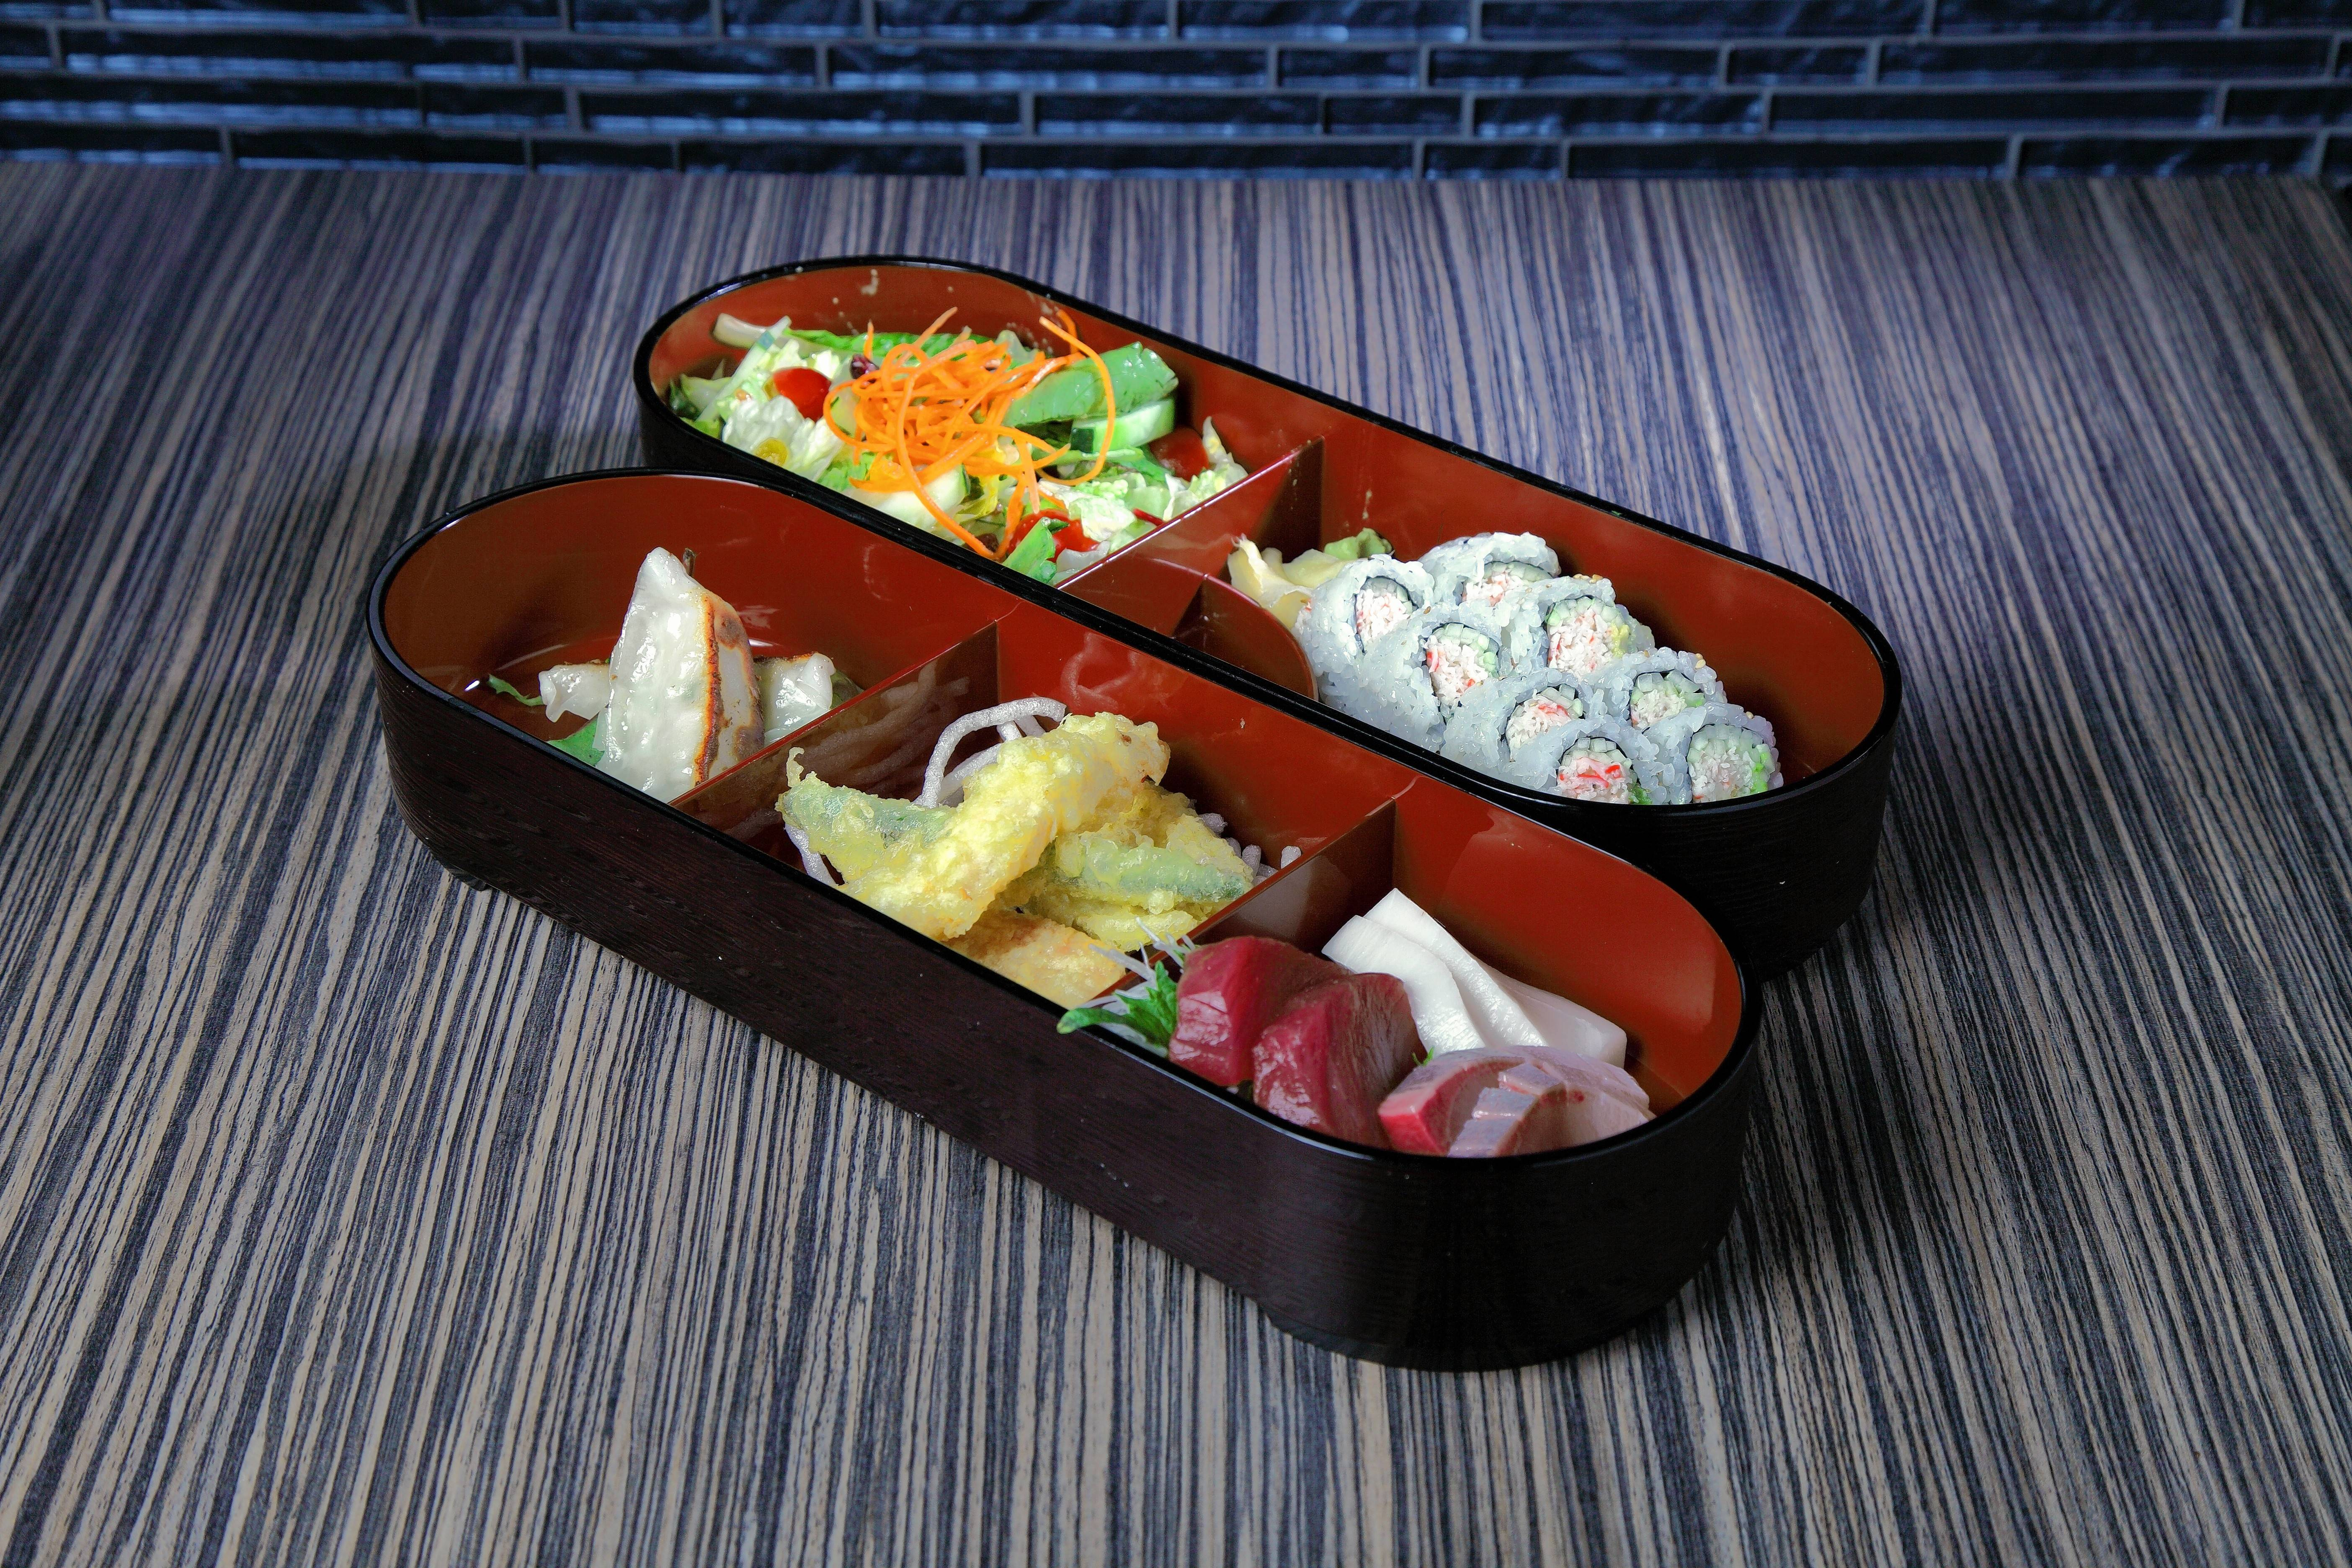 The bento boxes provide less expensive lunch options.